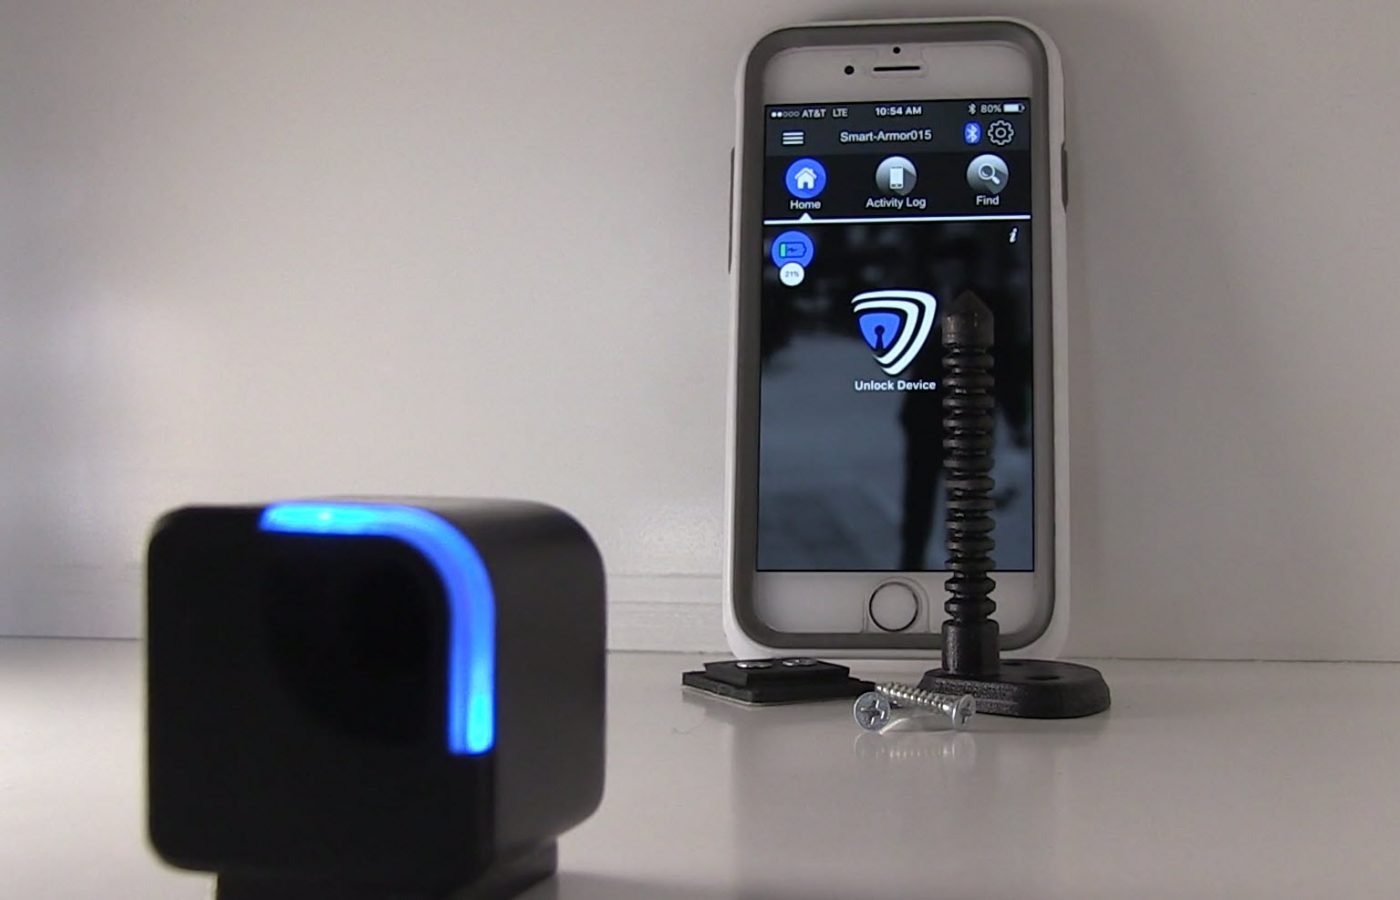 This Quot Attach To Anything Quot Bluetooth Lock May Keep Your